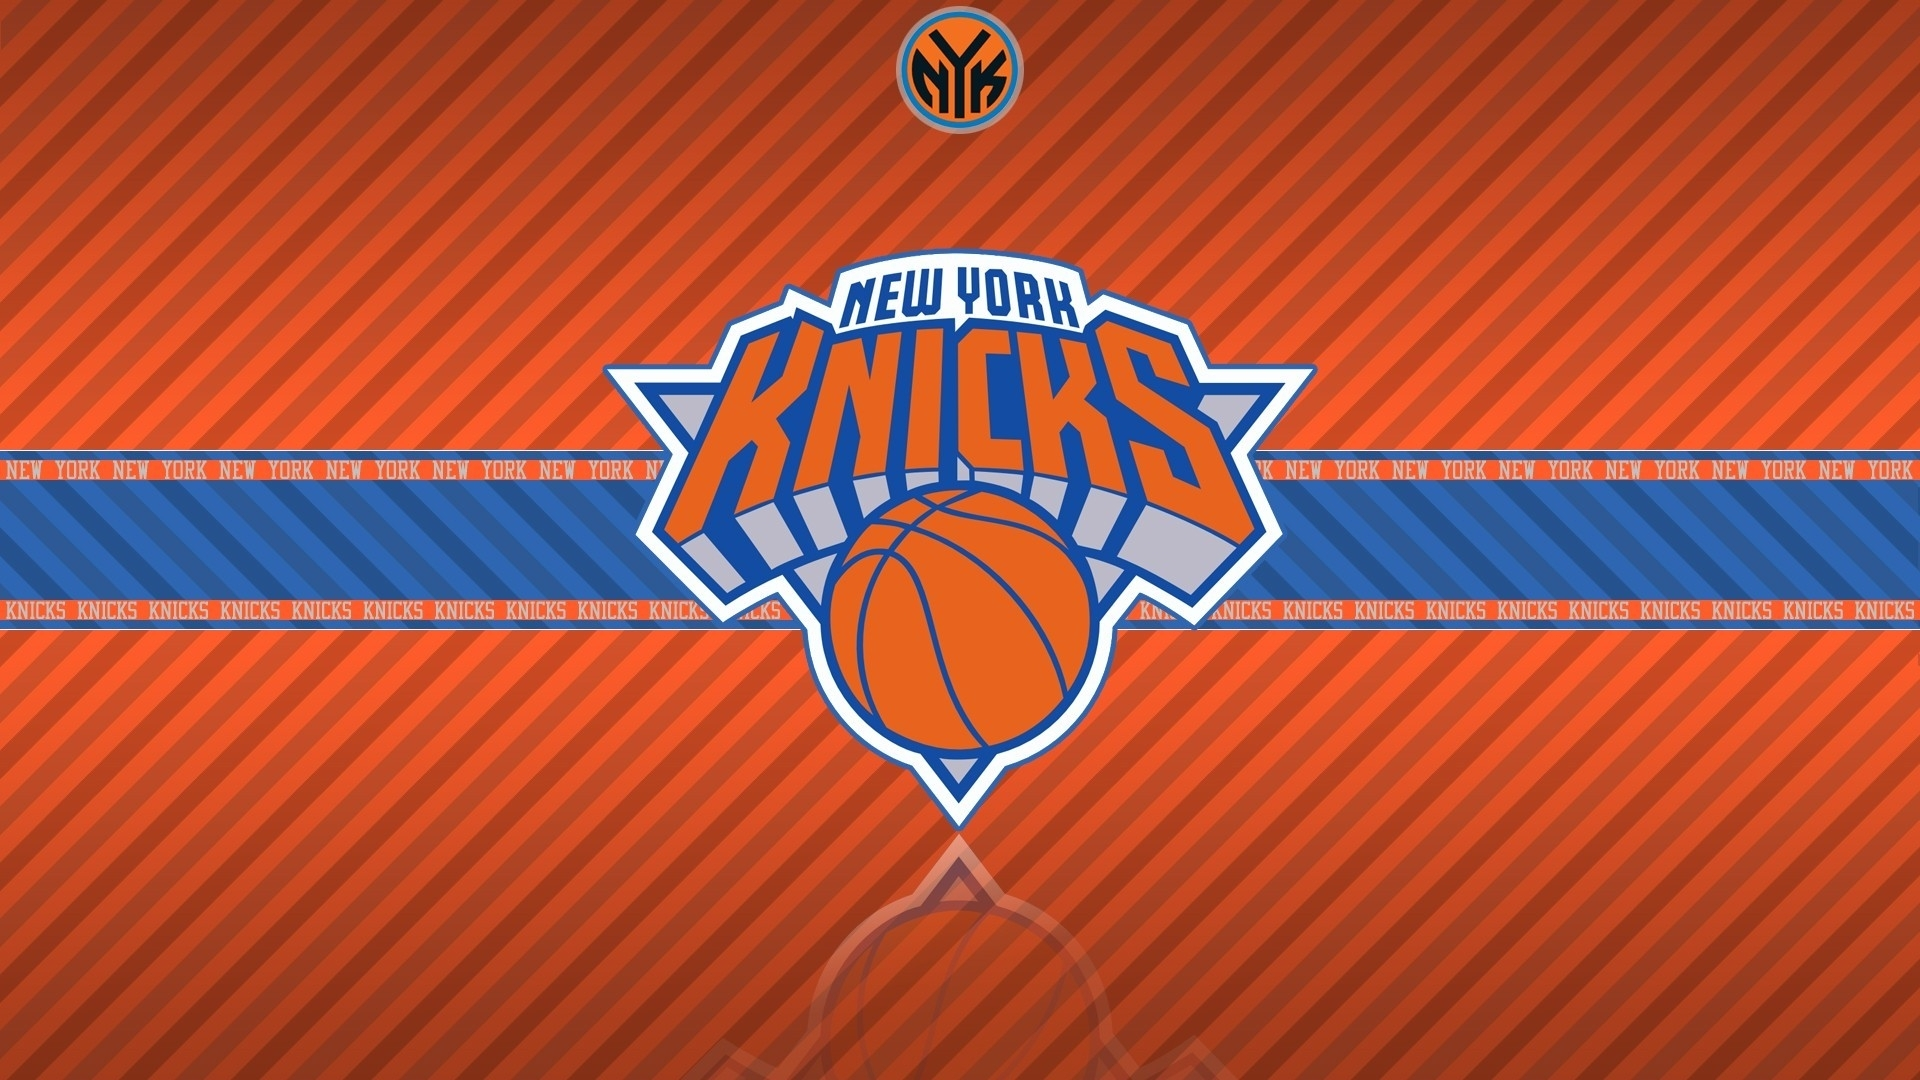 www.baltana/files/wallpapers-12/new-york-knick